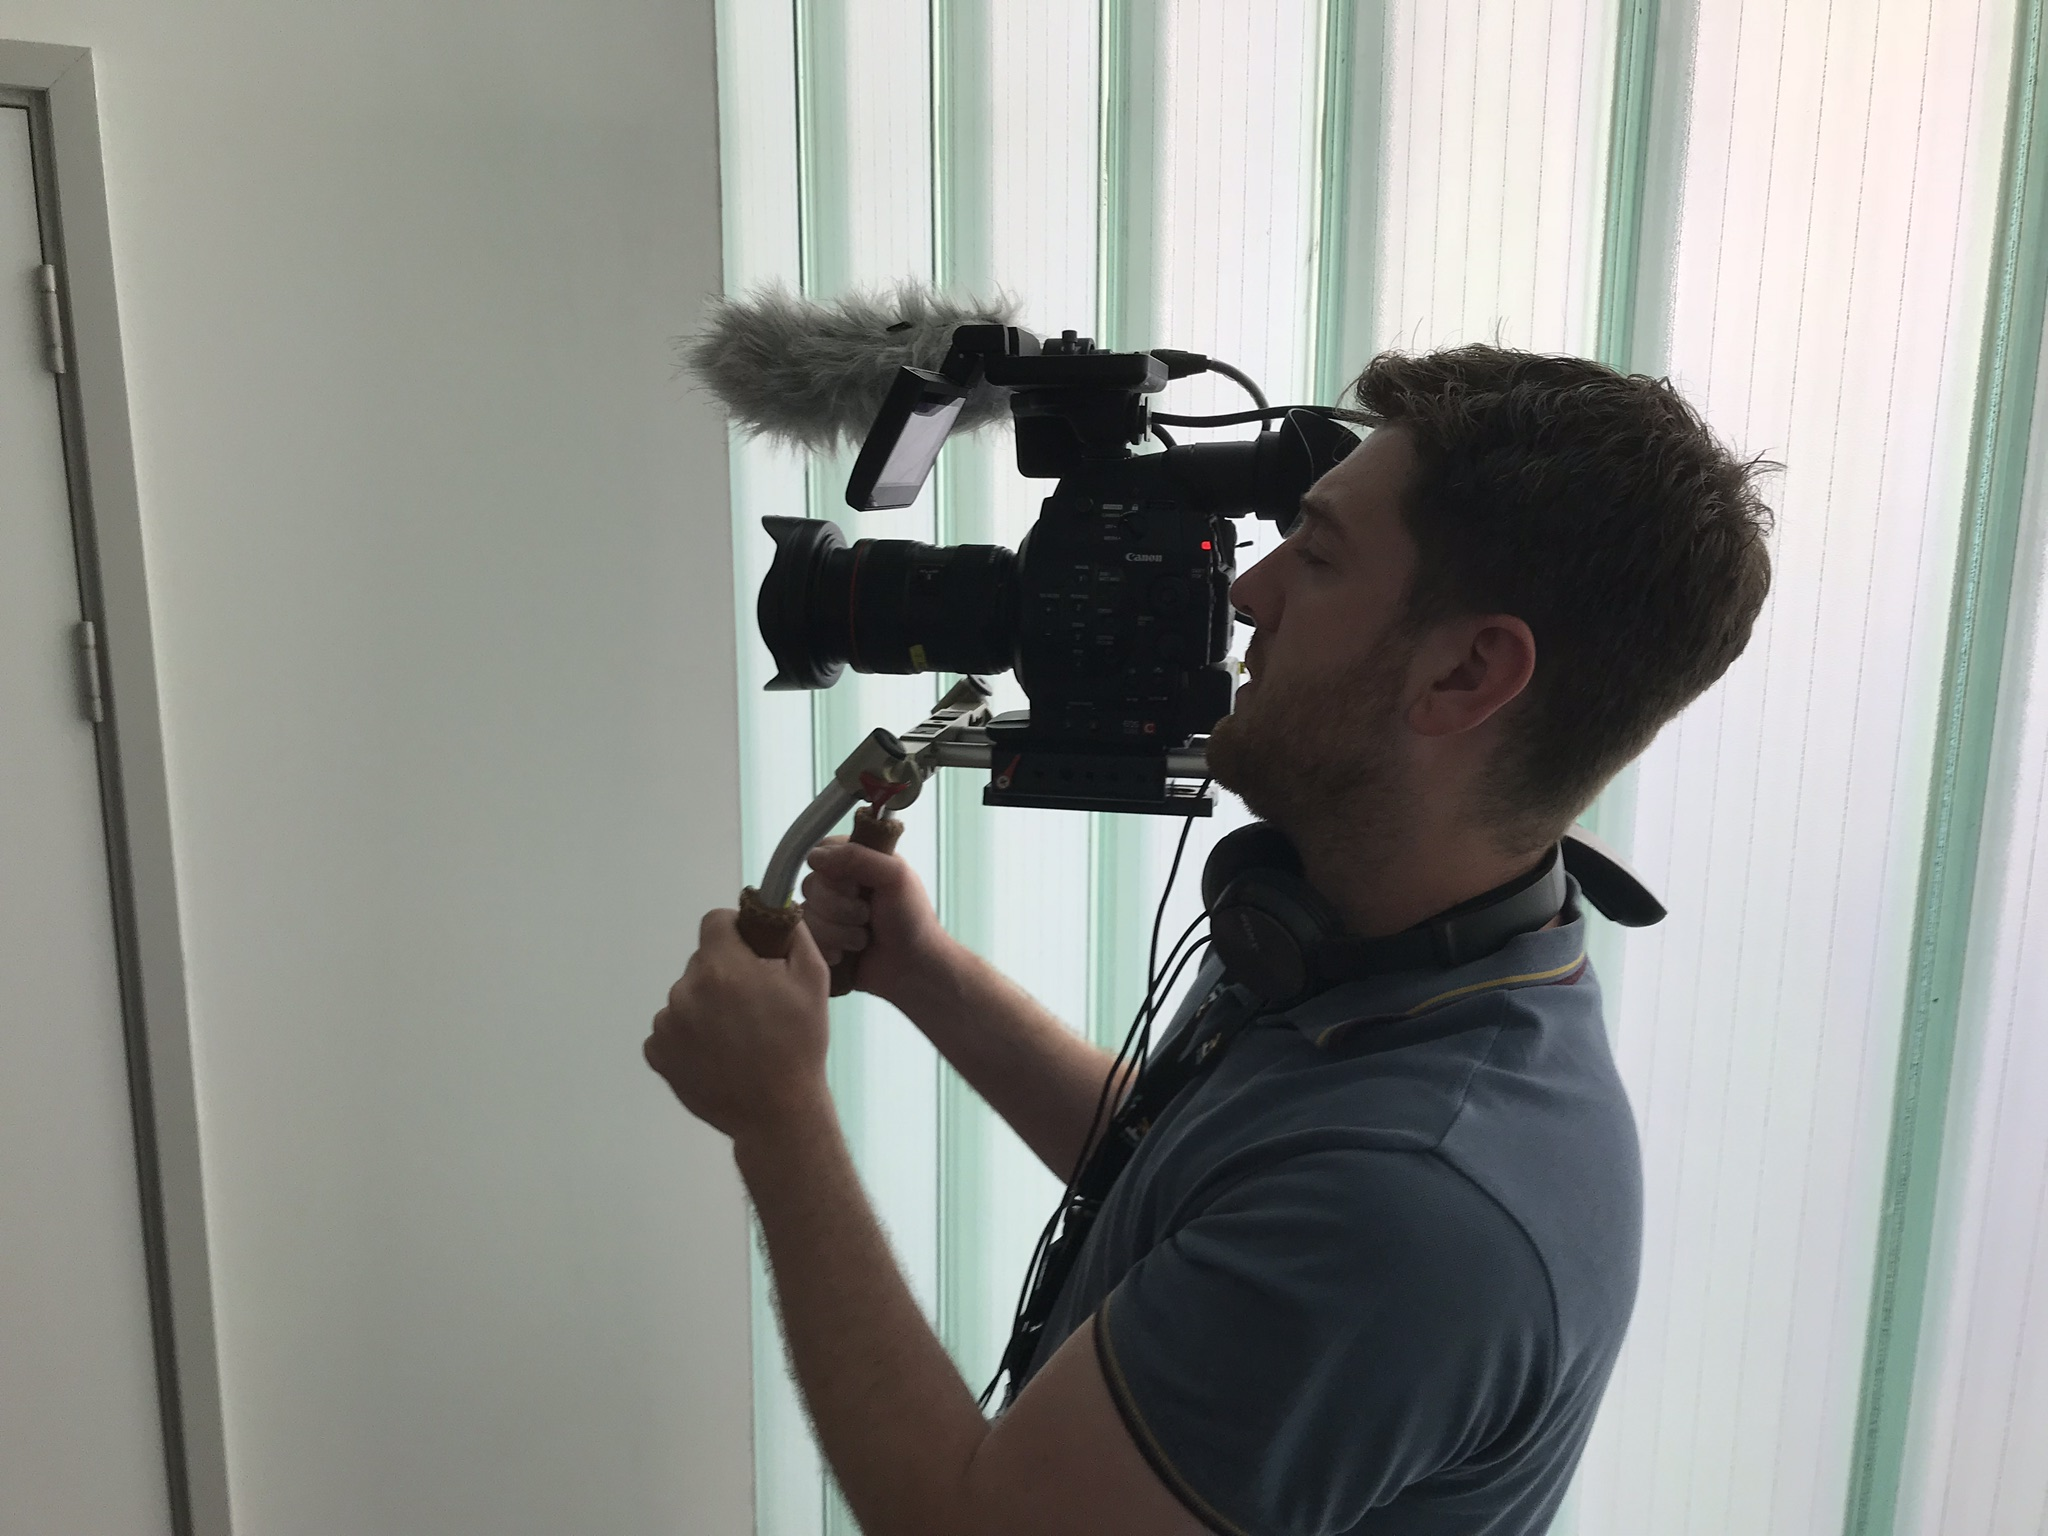 C300 training for Kyle